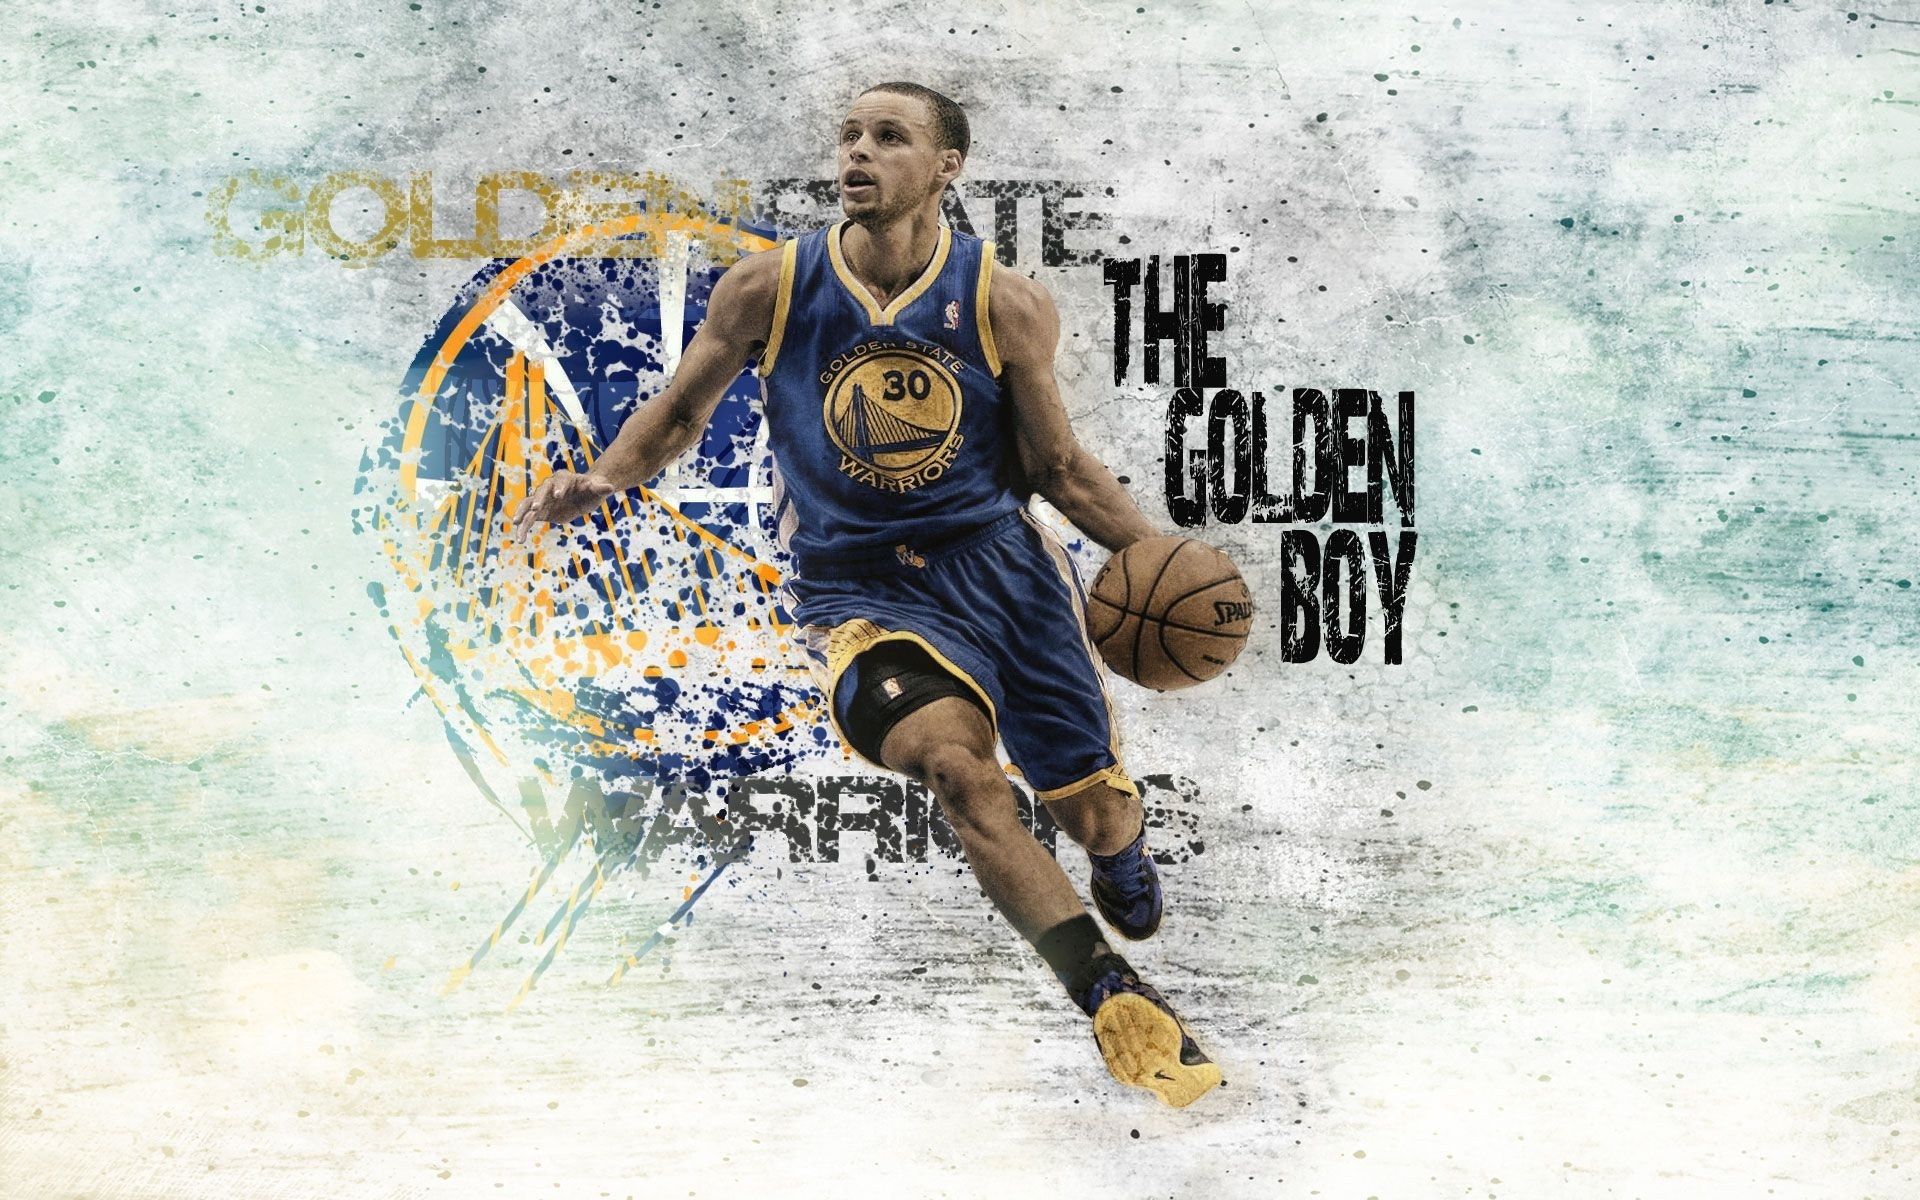 stephen curry wallpaper hd | stephen curry wallpaper | pinterest